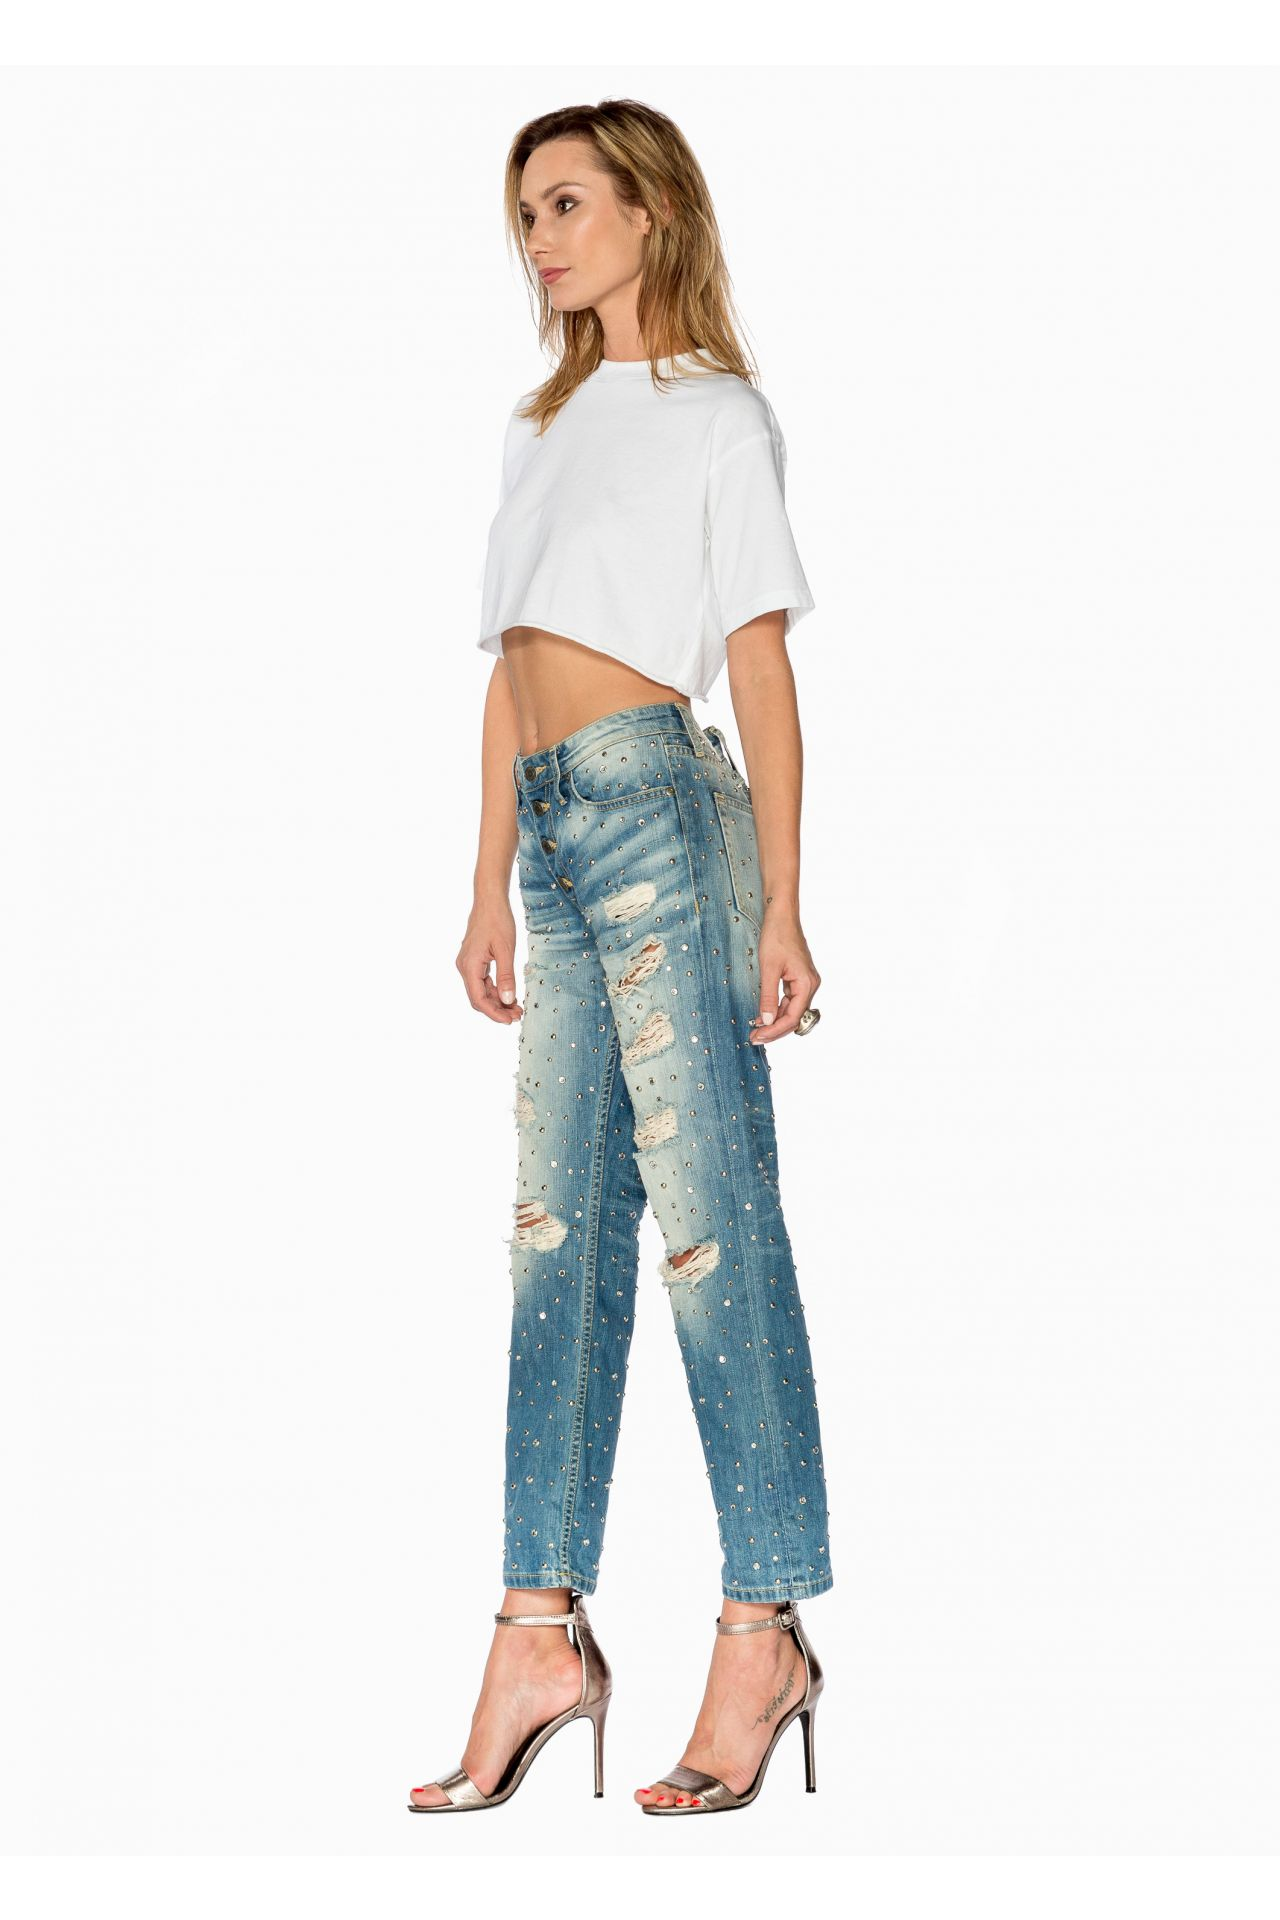 BOYFRIEND JEANS IN ELROY MEDIUM WITH CLEAR AND SILVER STUDS